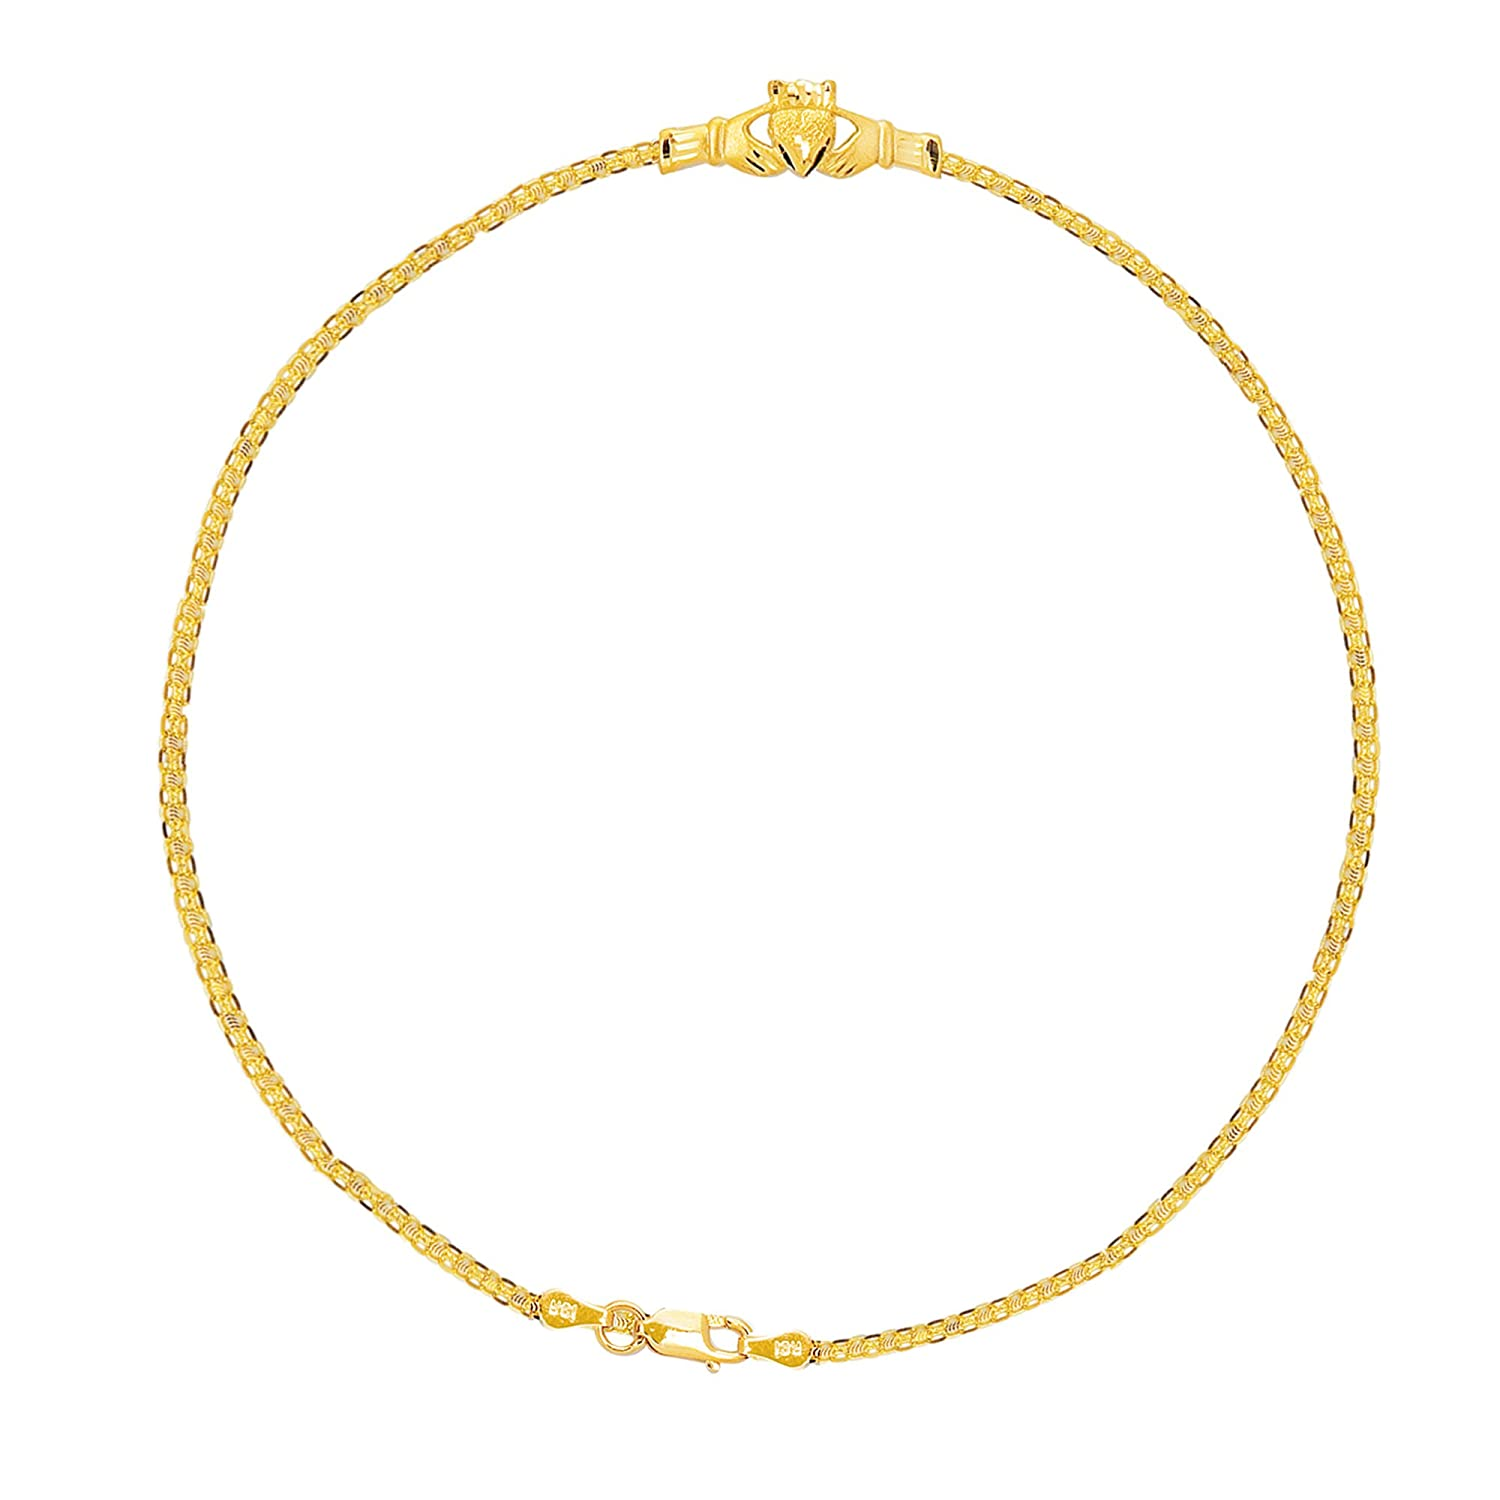 jewelry free braided solid anklet shipping product bracelet today foxtail inch ankle watches link overstock gold